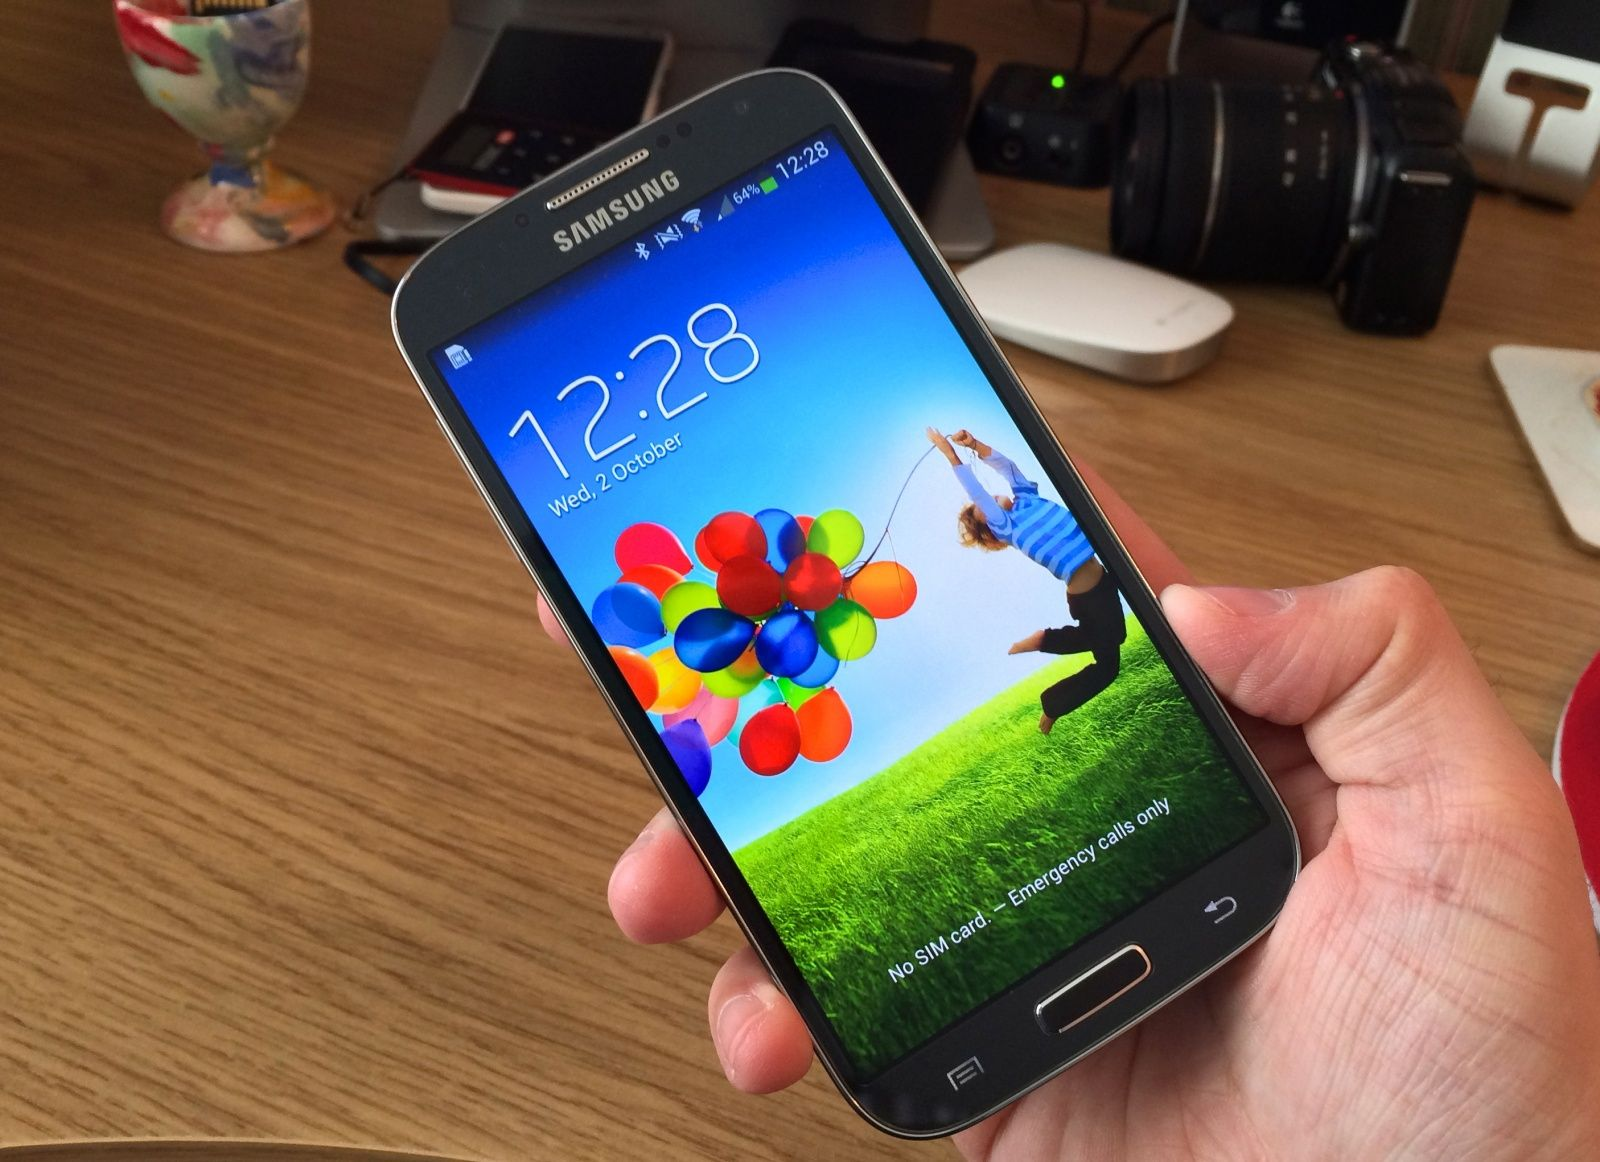 How to Flash a Custom ROM on the Samsung Galaxy S4 (US Cellular)